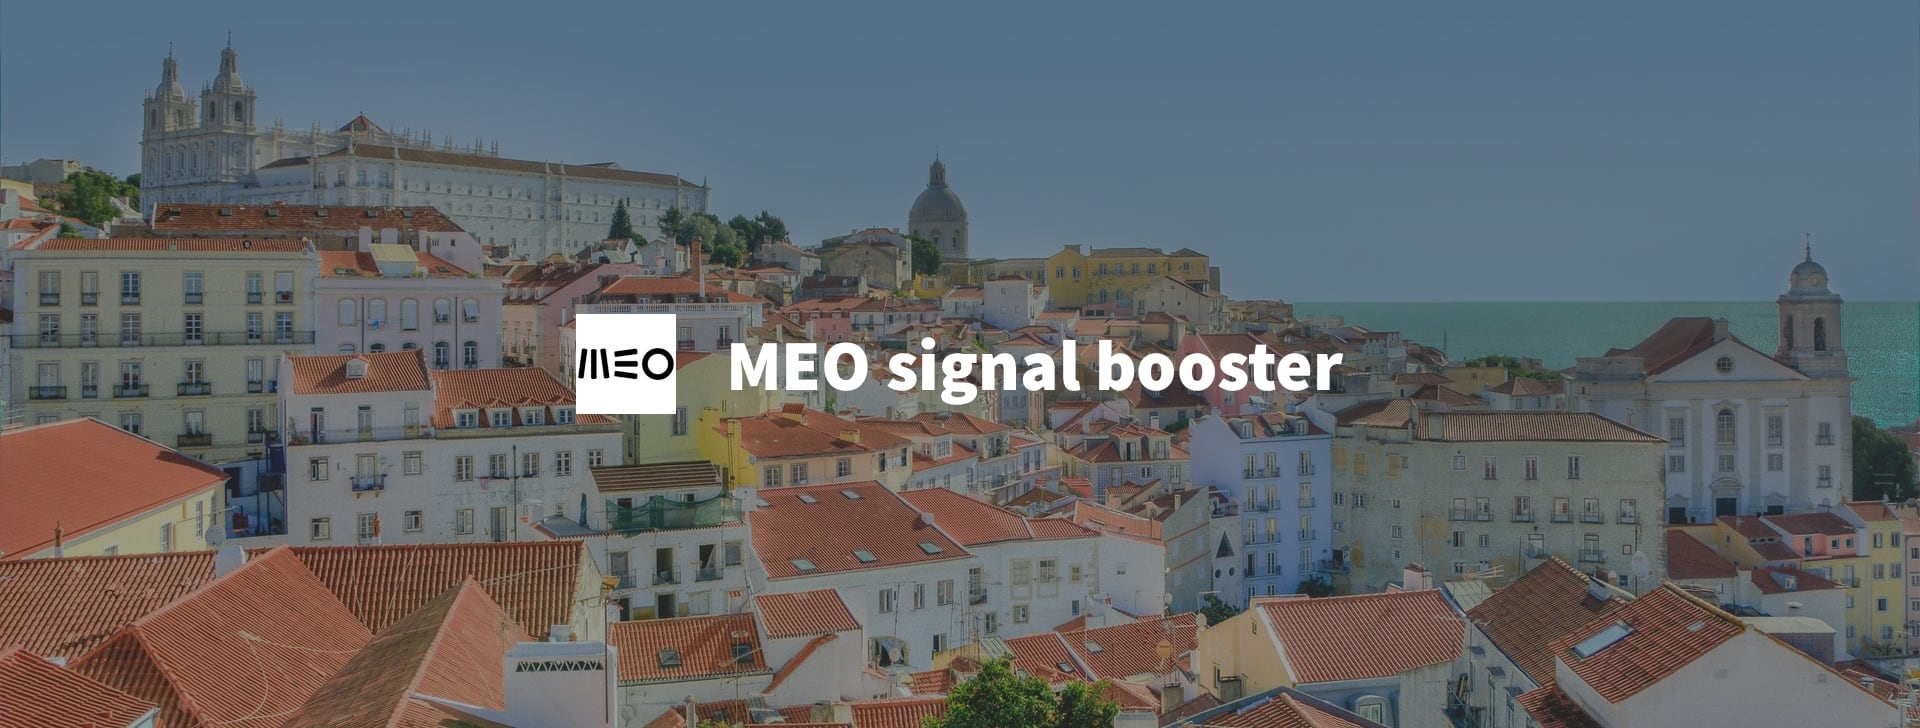 MEO mobile signal